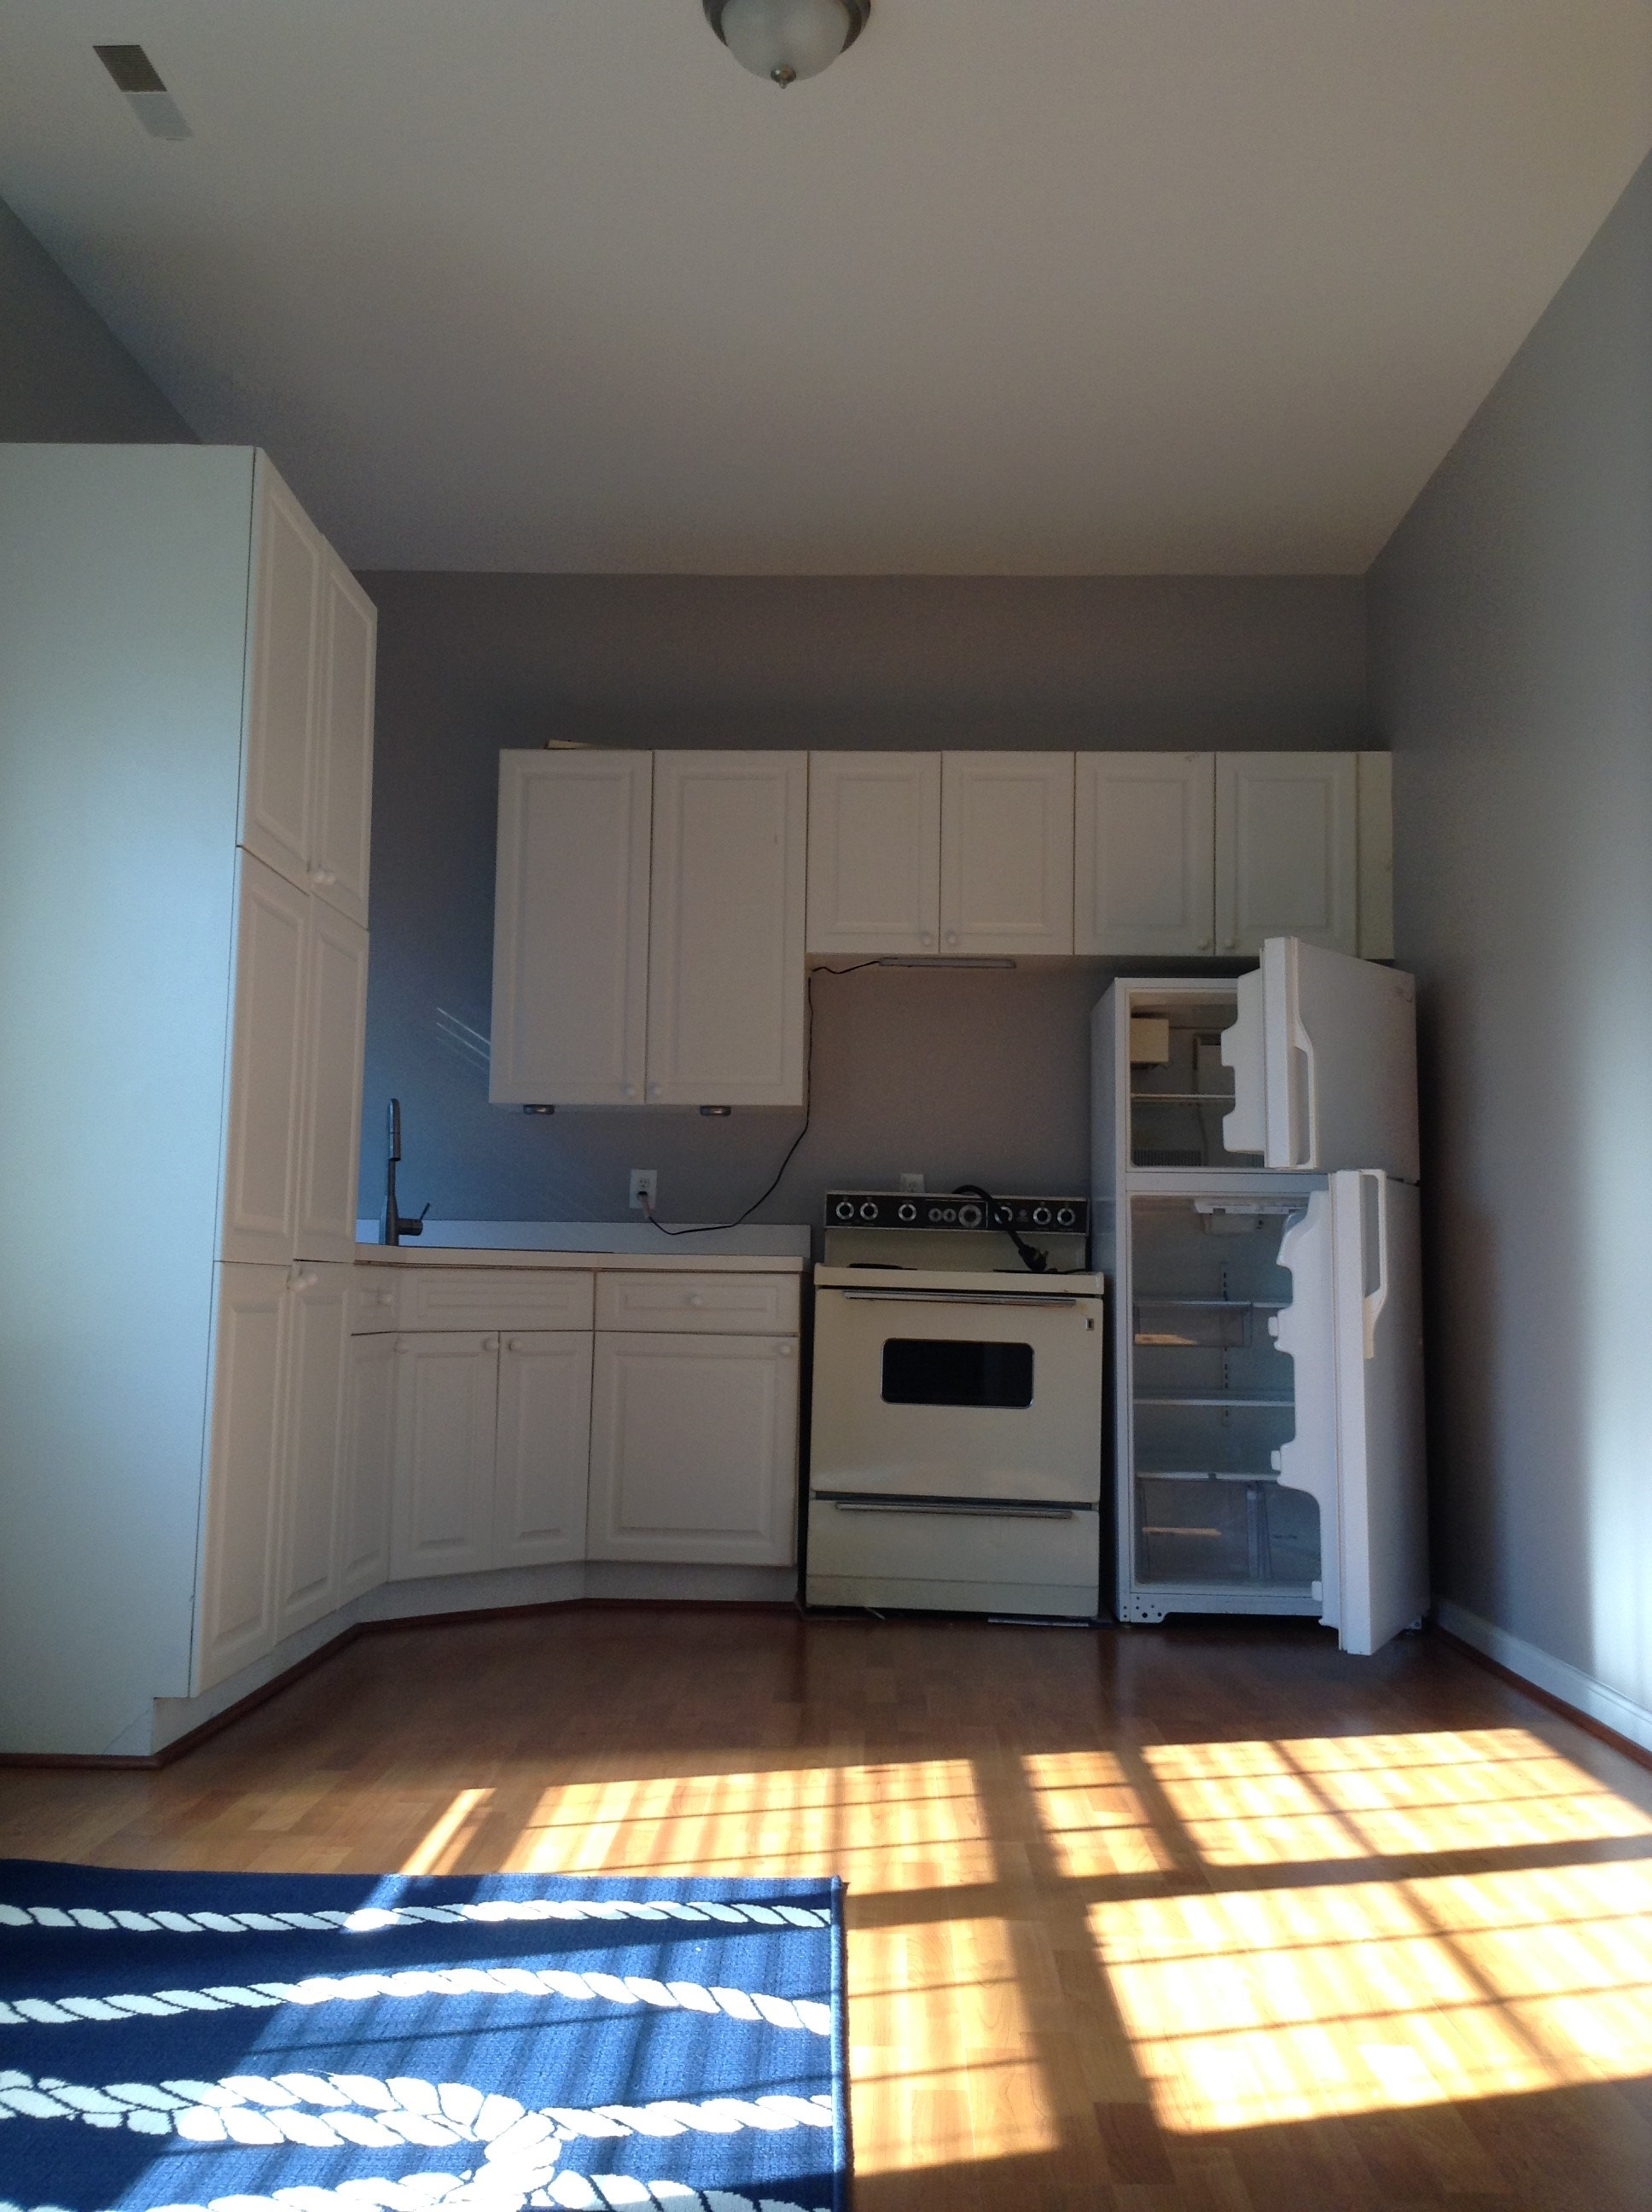 offered home to rent in mount airy md – rent a houses apartments  - apartment for rent (private entrance full of natural light) no lease